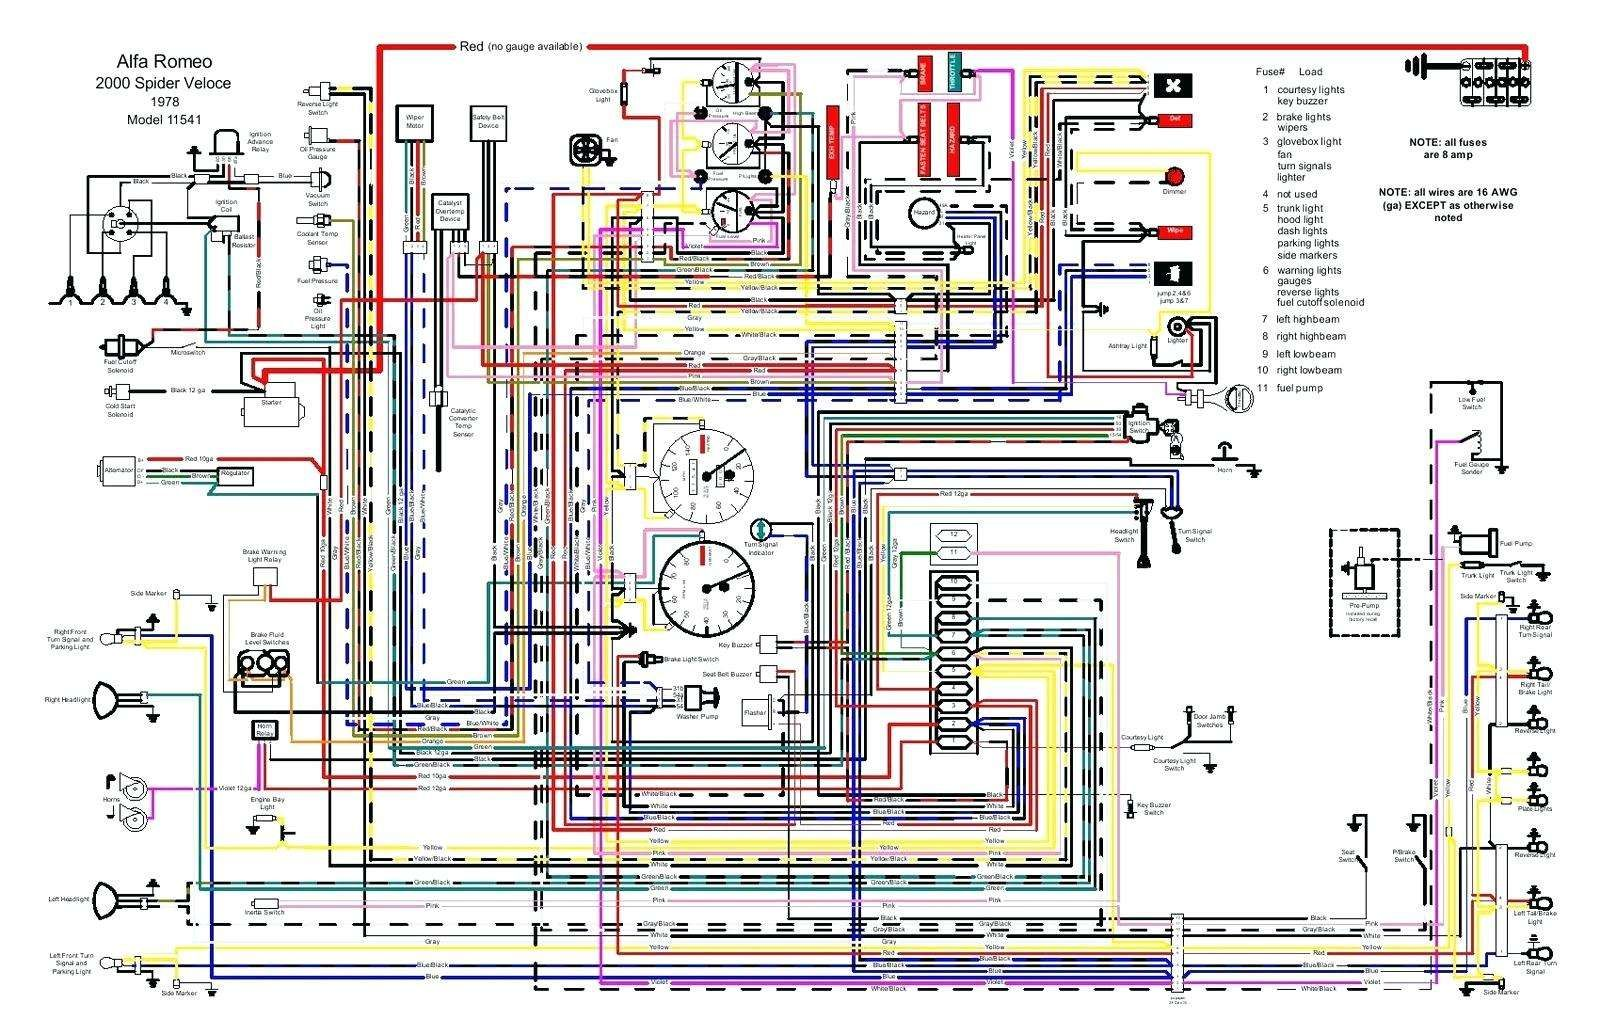 Wiring Diagram Cars Trucks Wiring Diagram Cars Trucks Truck Horn Wiring Wiring Diagrams Electrical Wiring Diagram Electrical Diagram Trailer Wiring Diagram